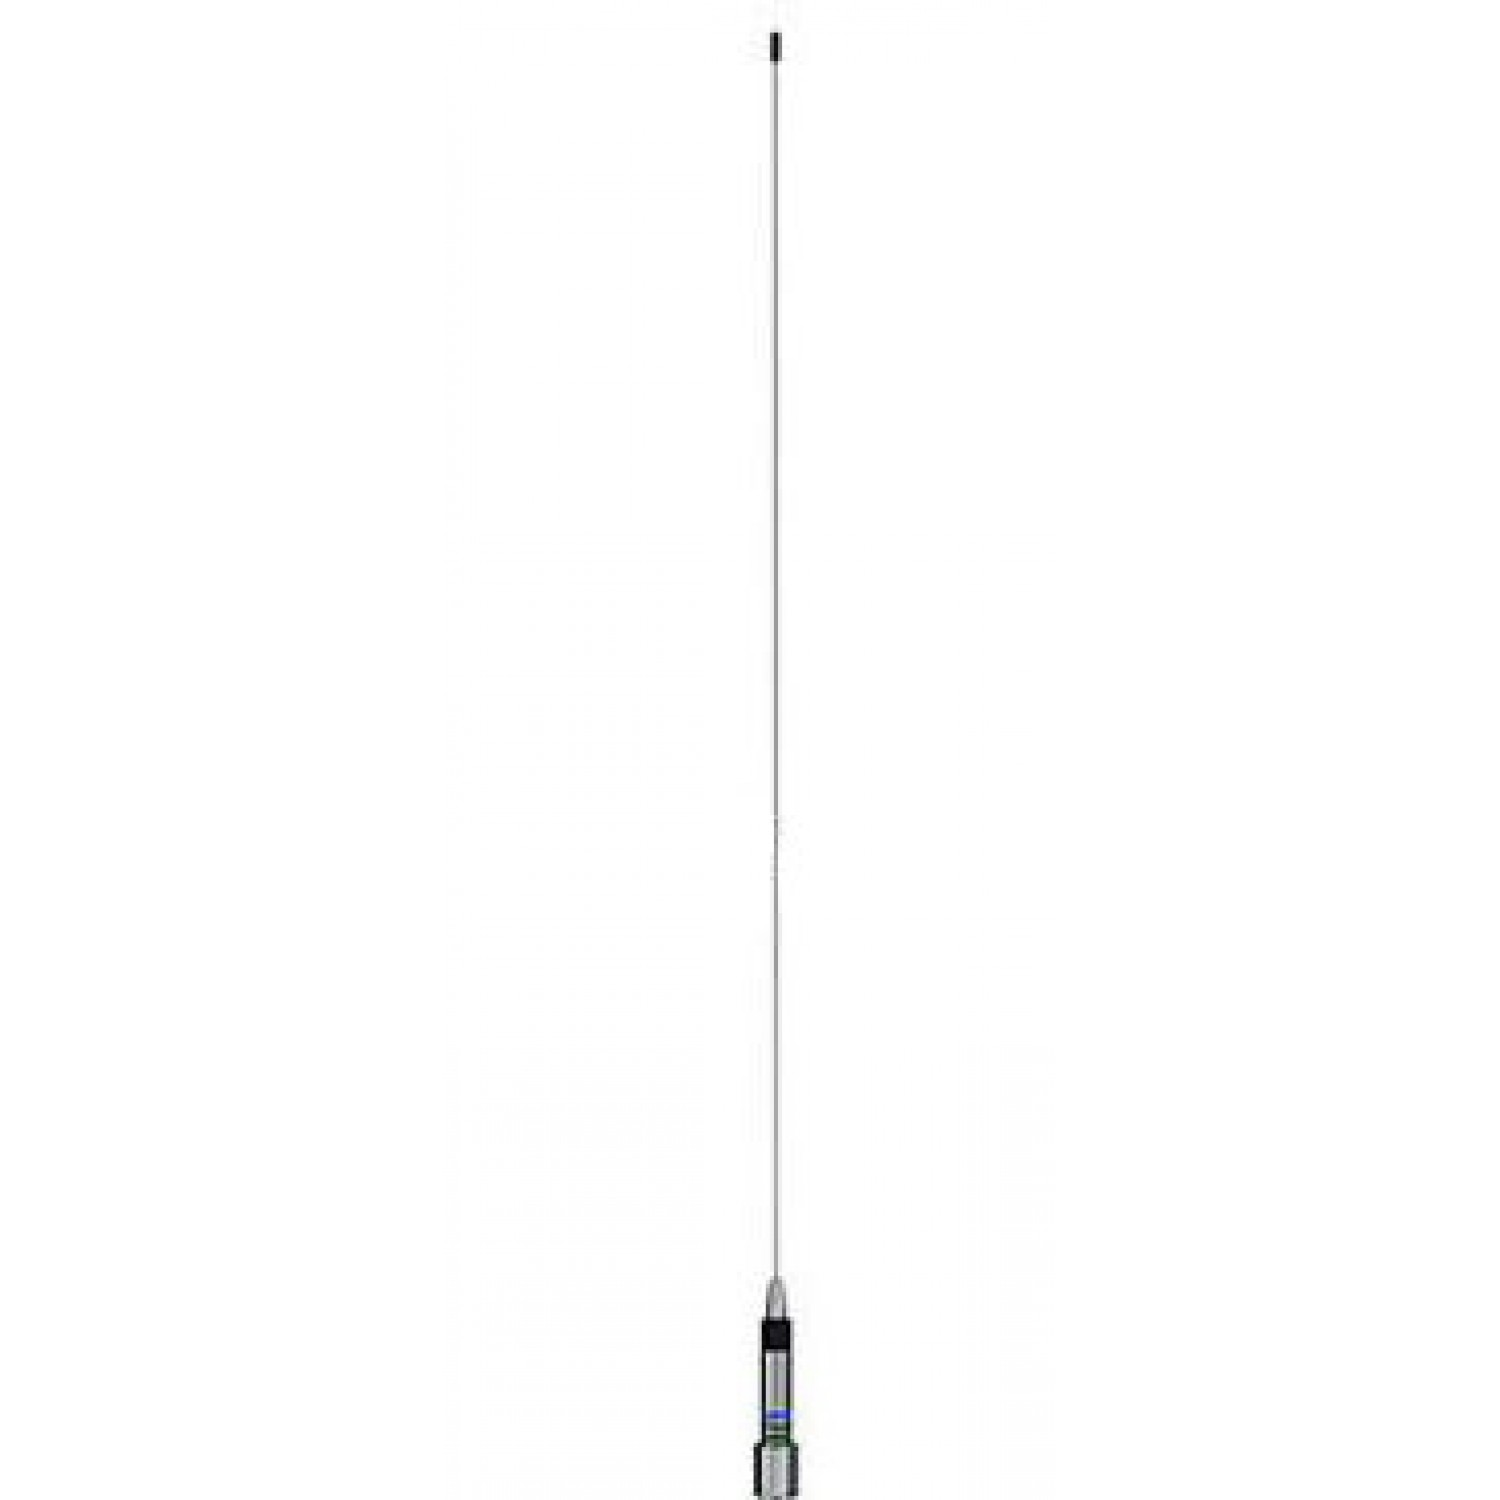 Антенна 1720 VHF Ant., 1.1m Stainless